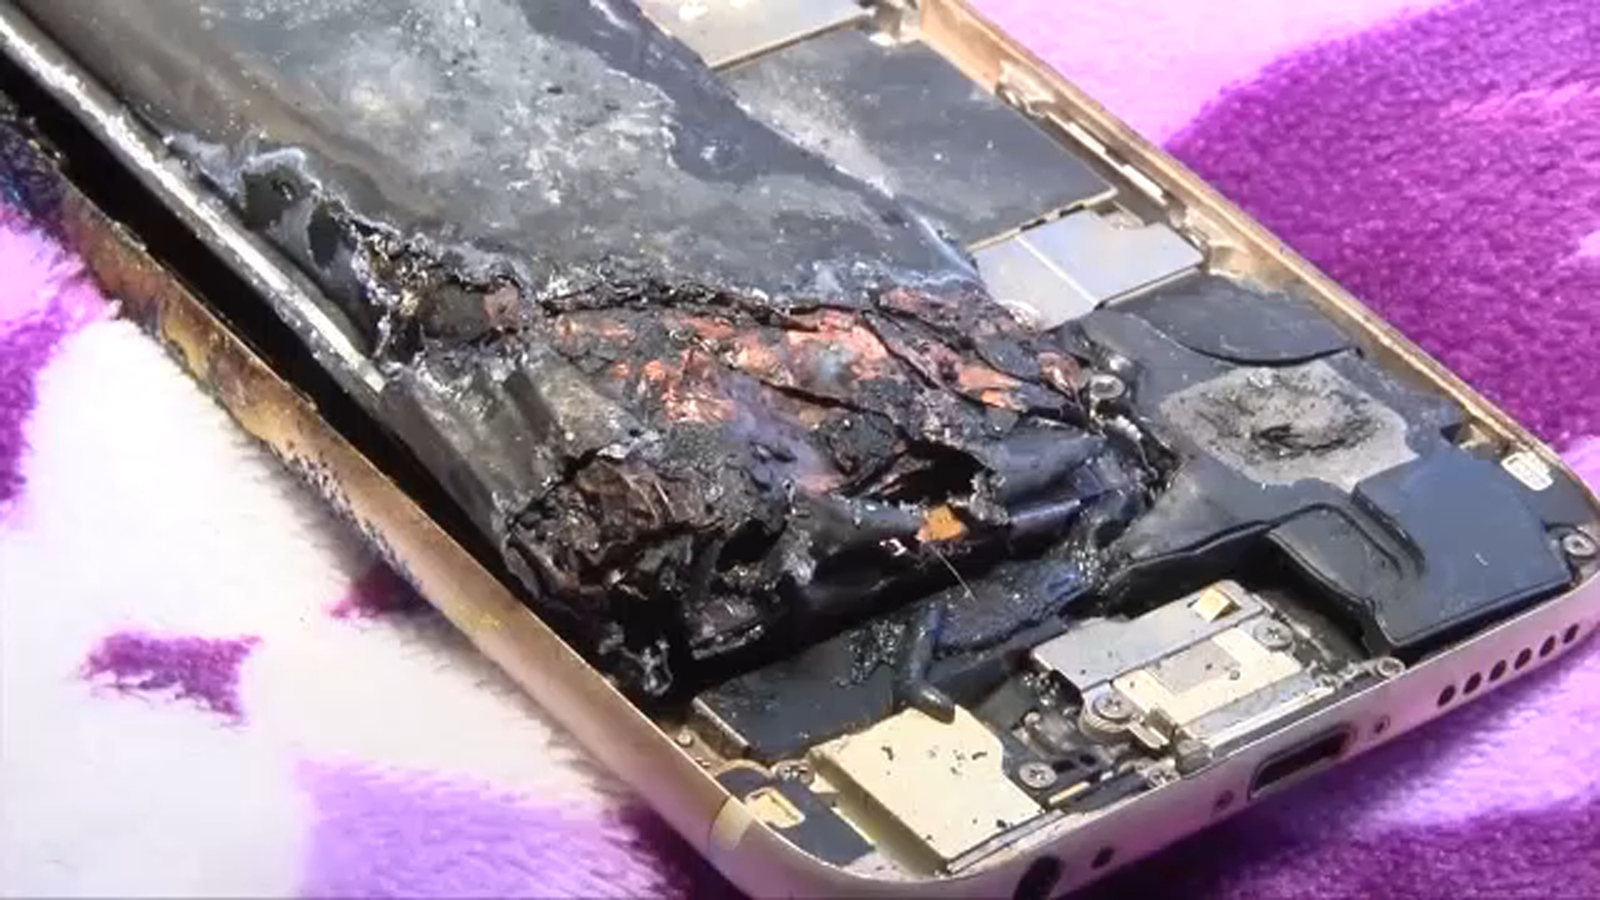 California girl says her iPhone 6 caught fire